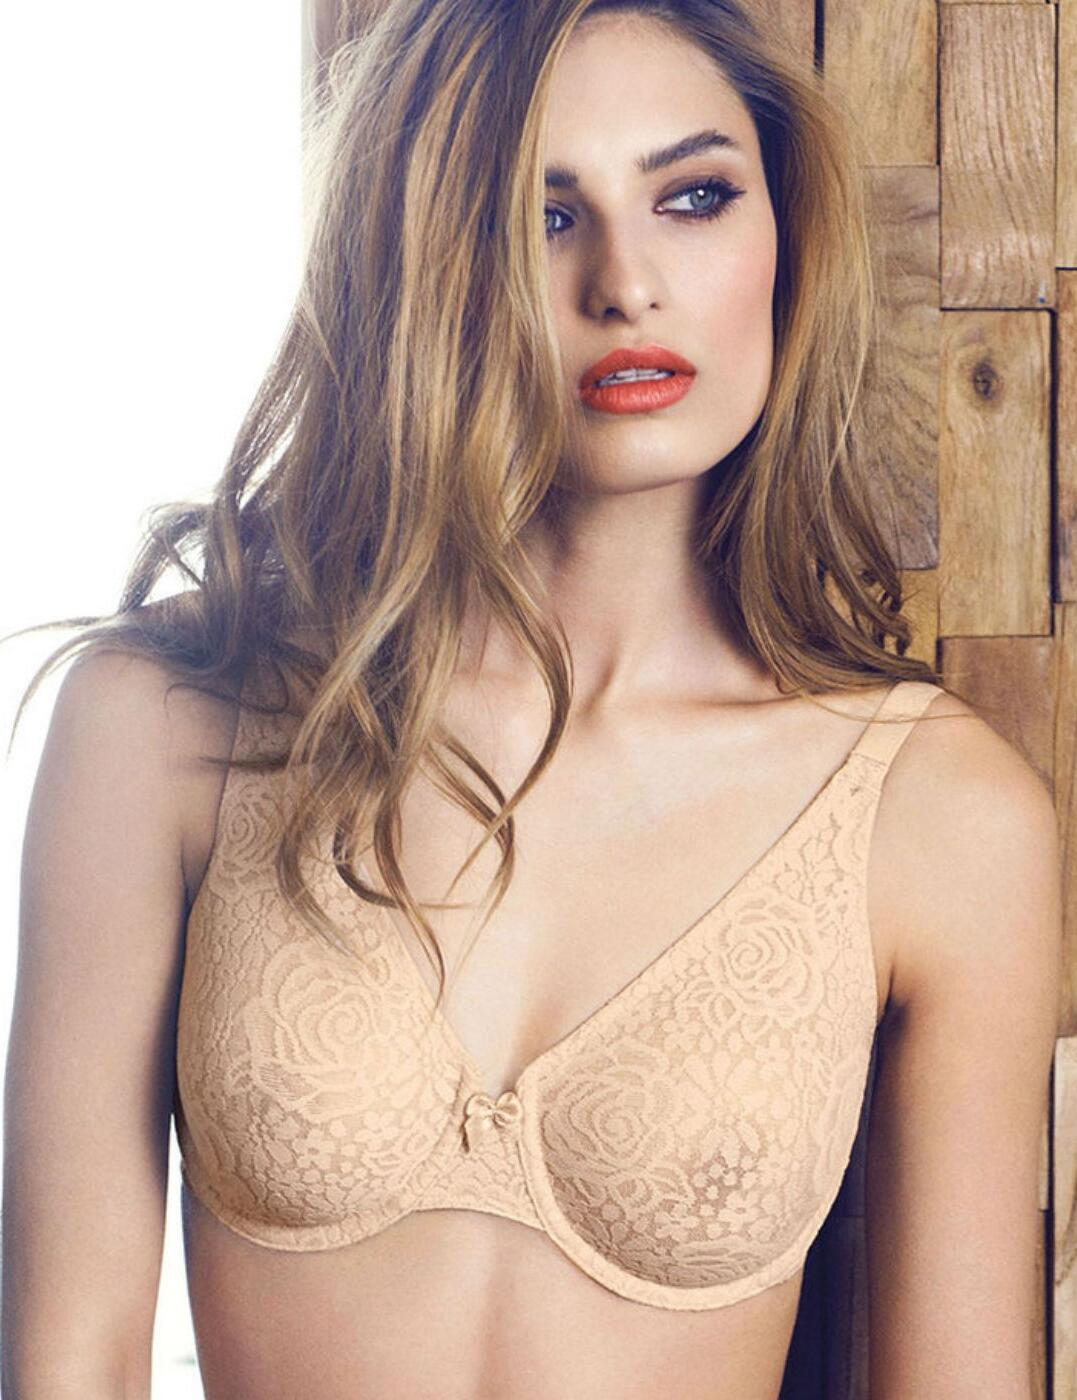 7736ccc755ba6 Wacoal Halo Lace Full Cup Bra 851205 Underwired Stretch Non Padded J Hook  40 D Nude. About this product. Picture 1 of 5  Picture 2 of 5  Picture 3 of  5 ...